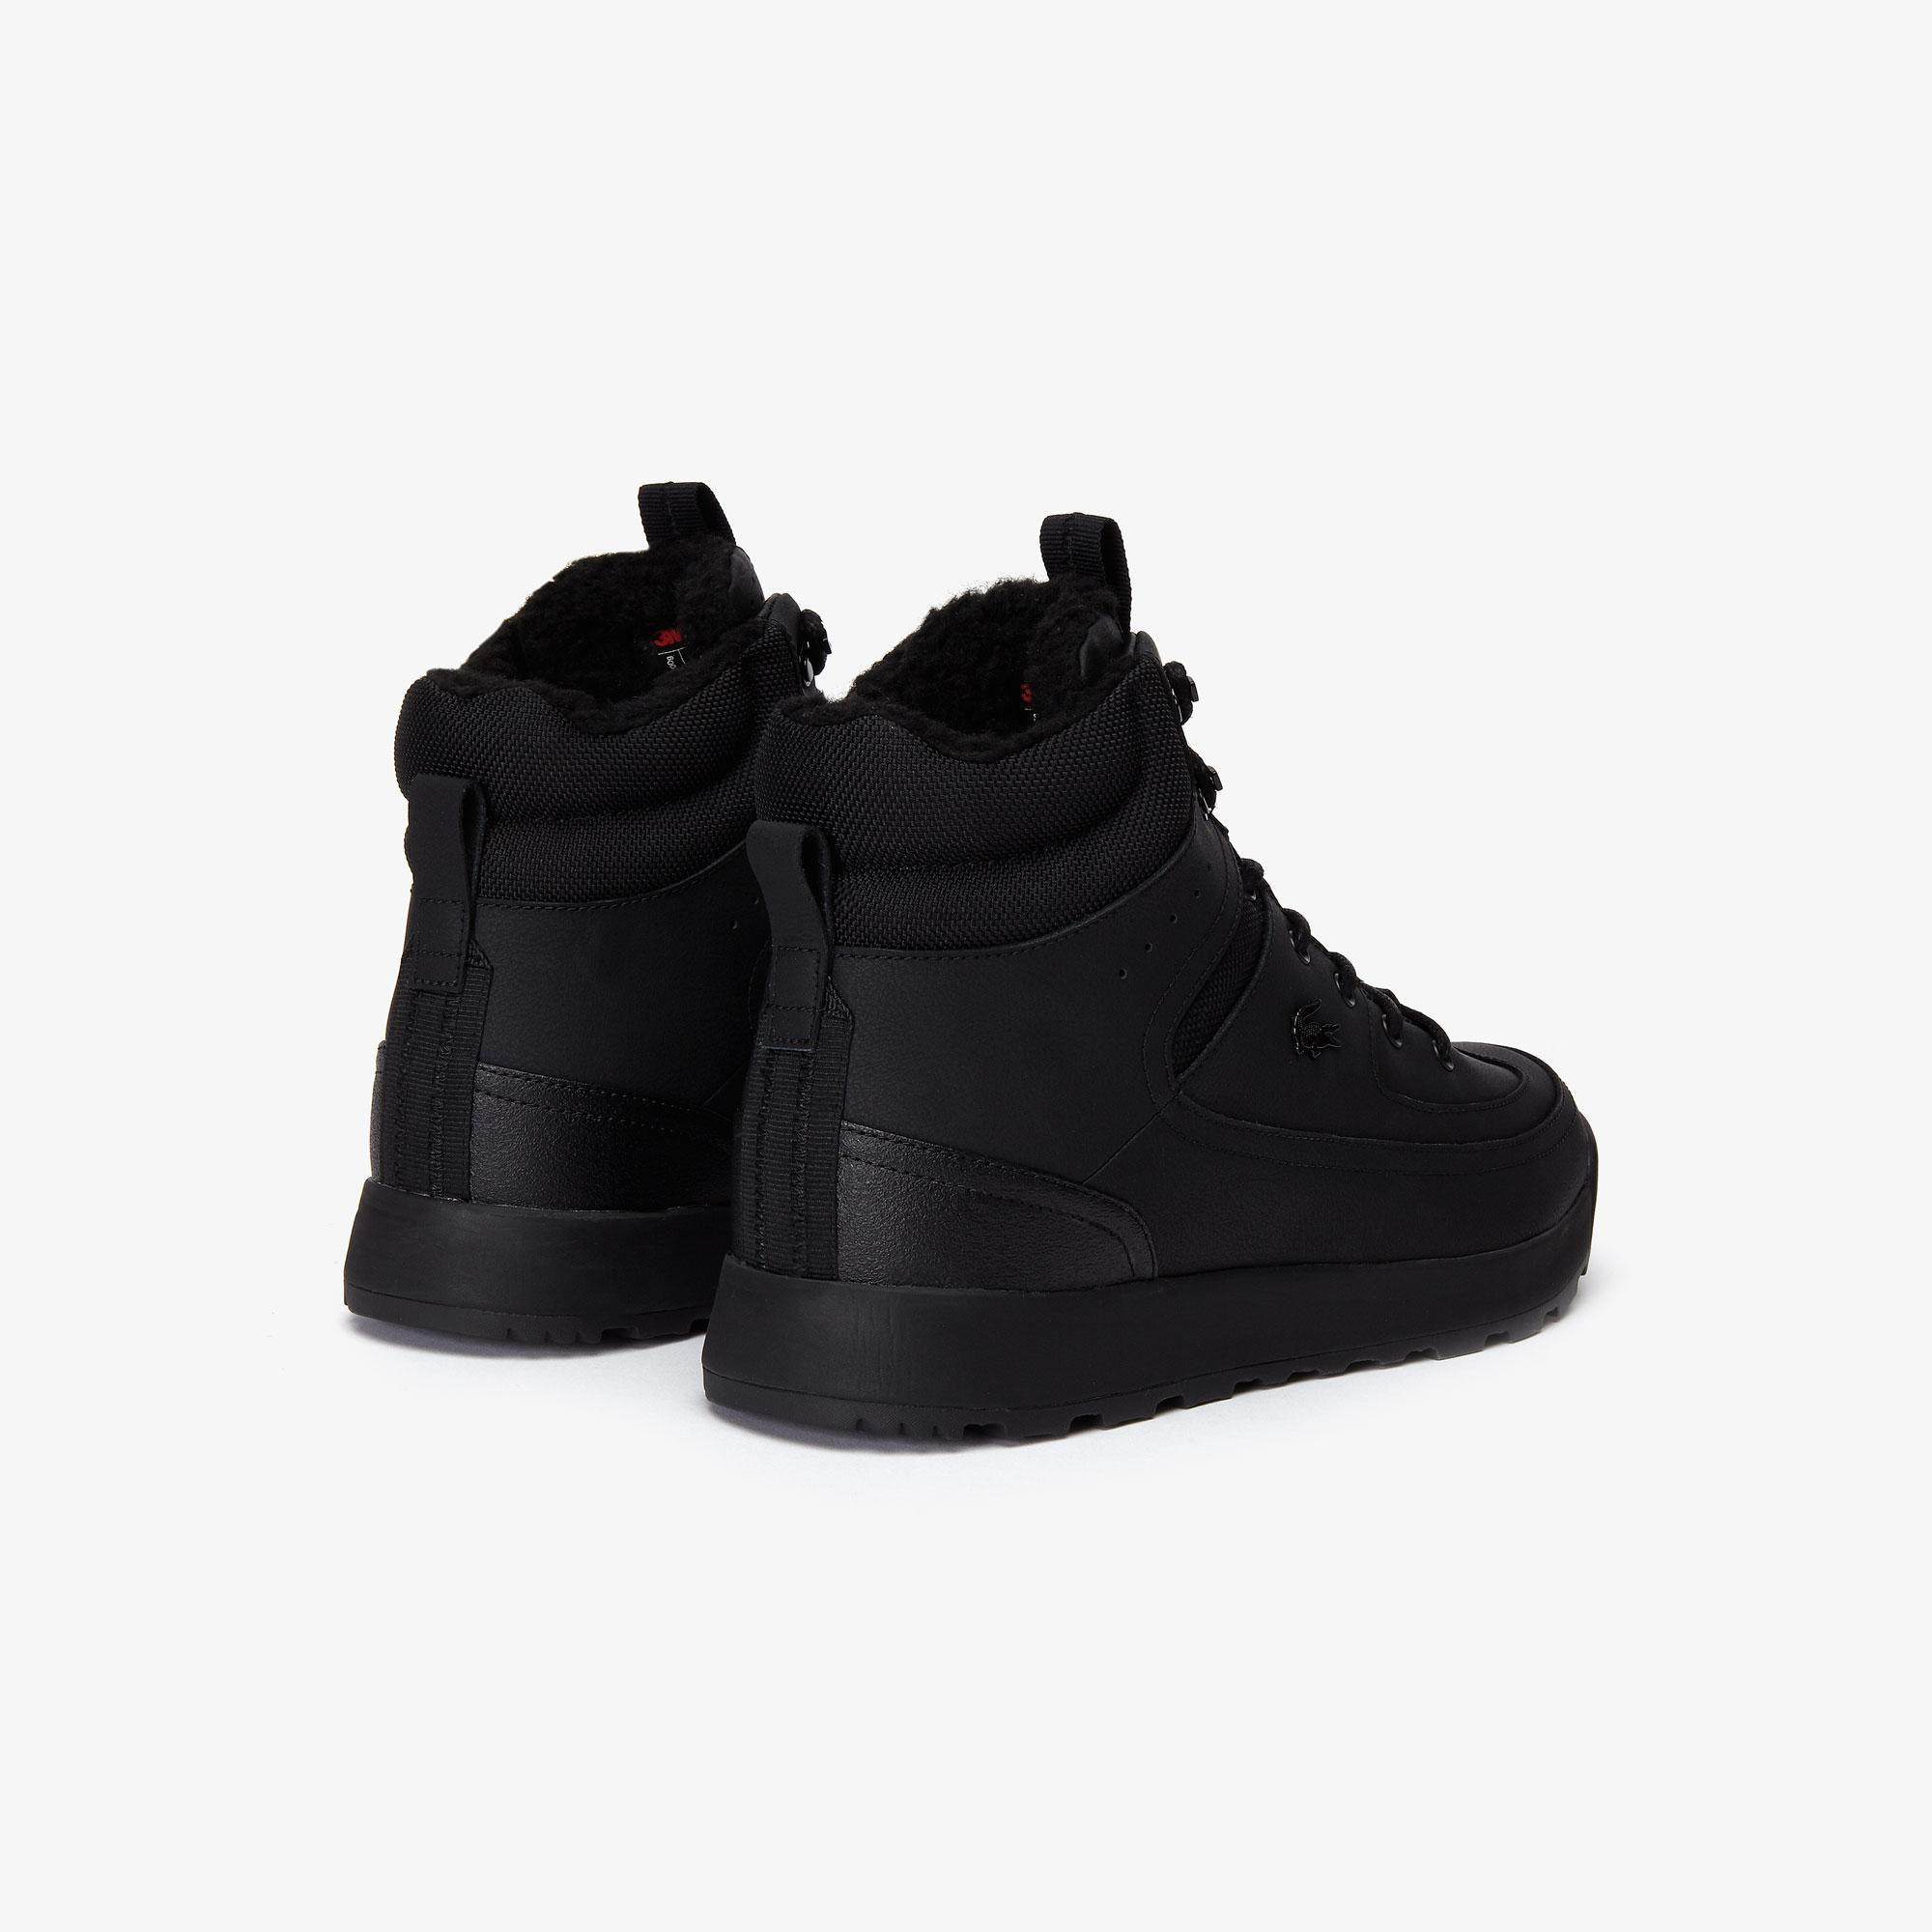 Lacoste Urban Breaker 419 2 Men's Boots